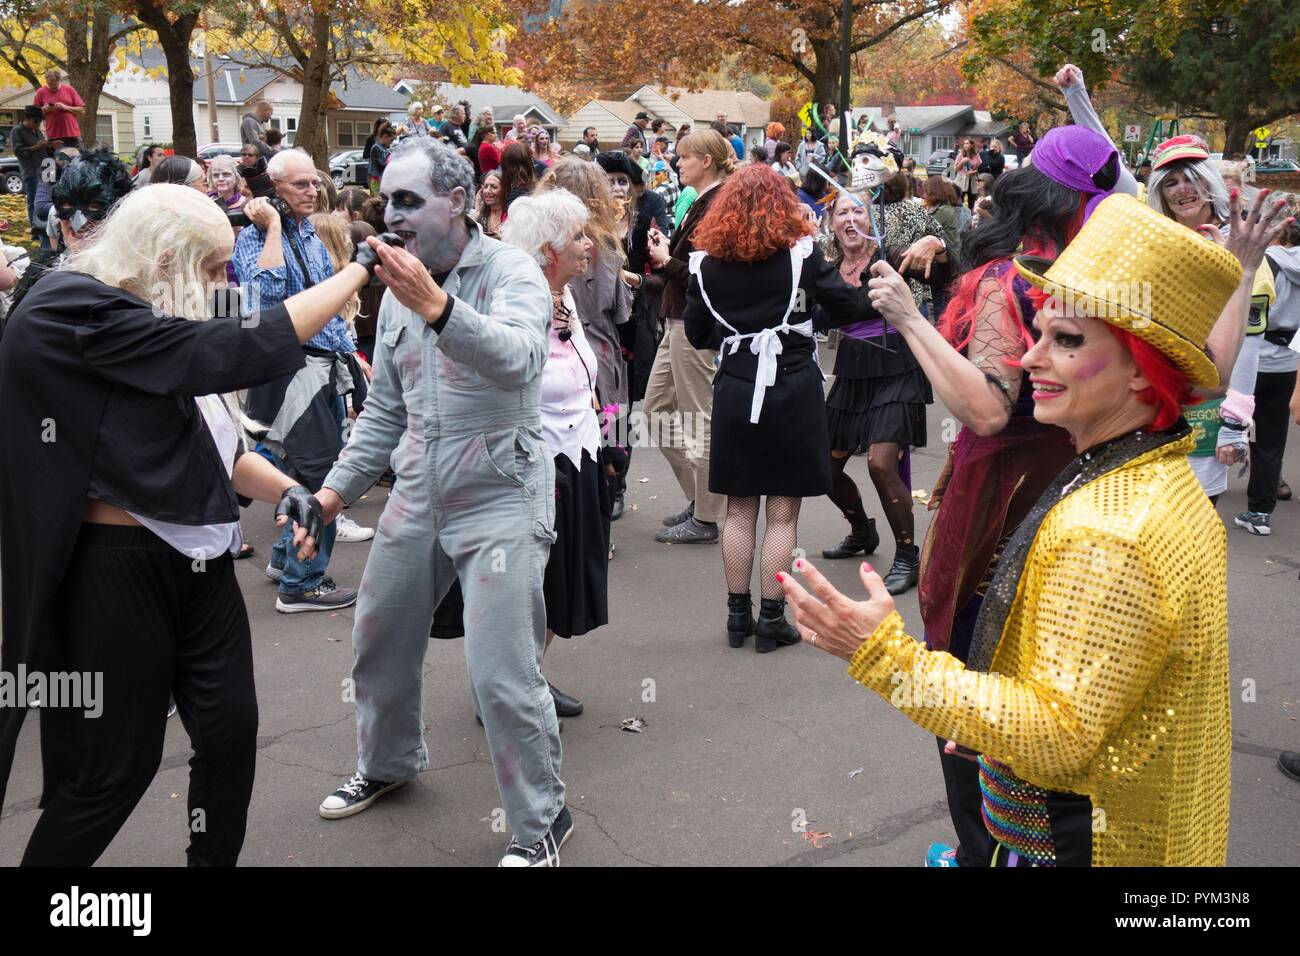 People dressed in costume for halloween dancing at the Thrill the World event in Eugene, OR, USA. - Stock Image